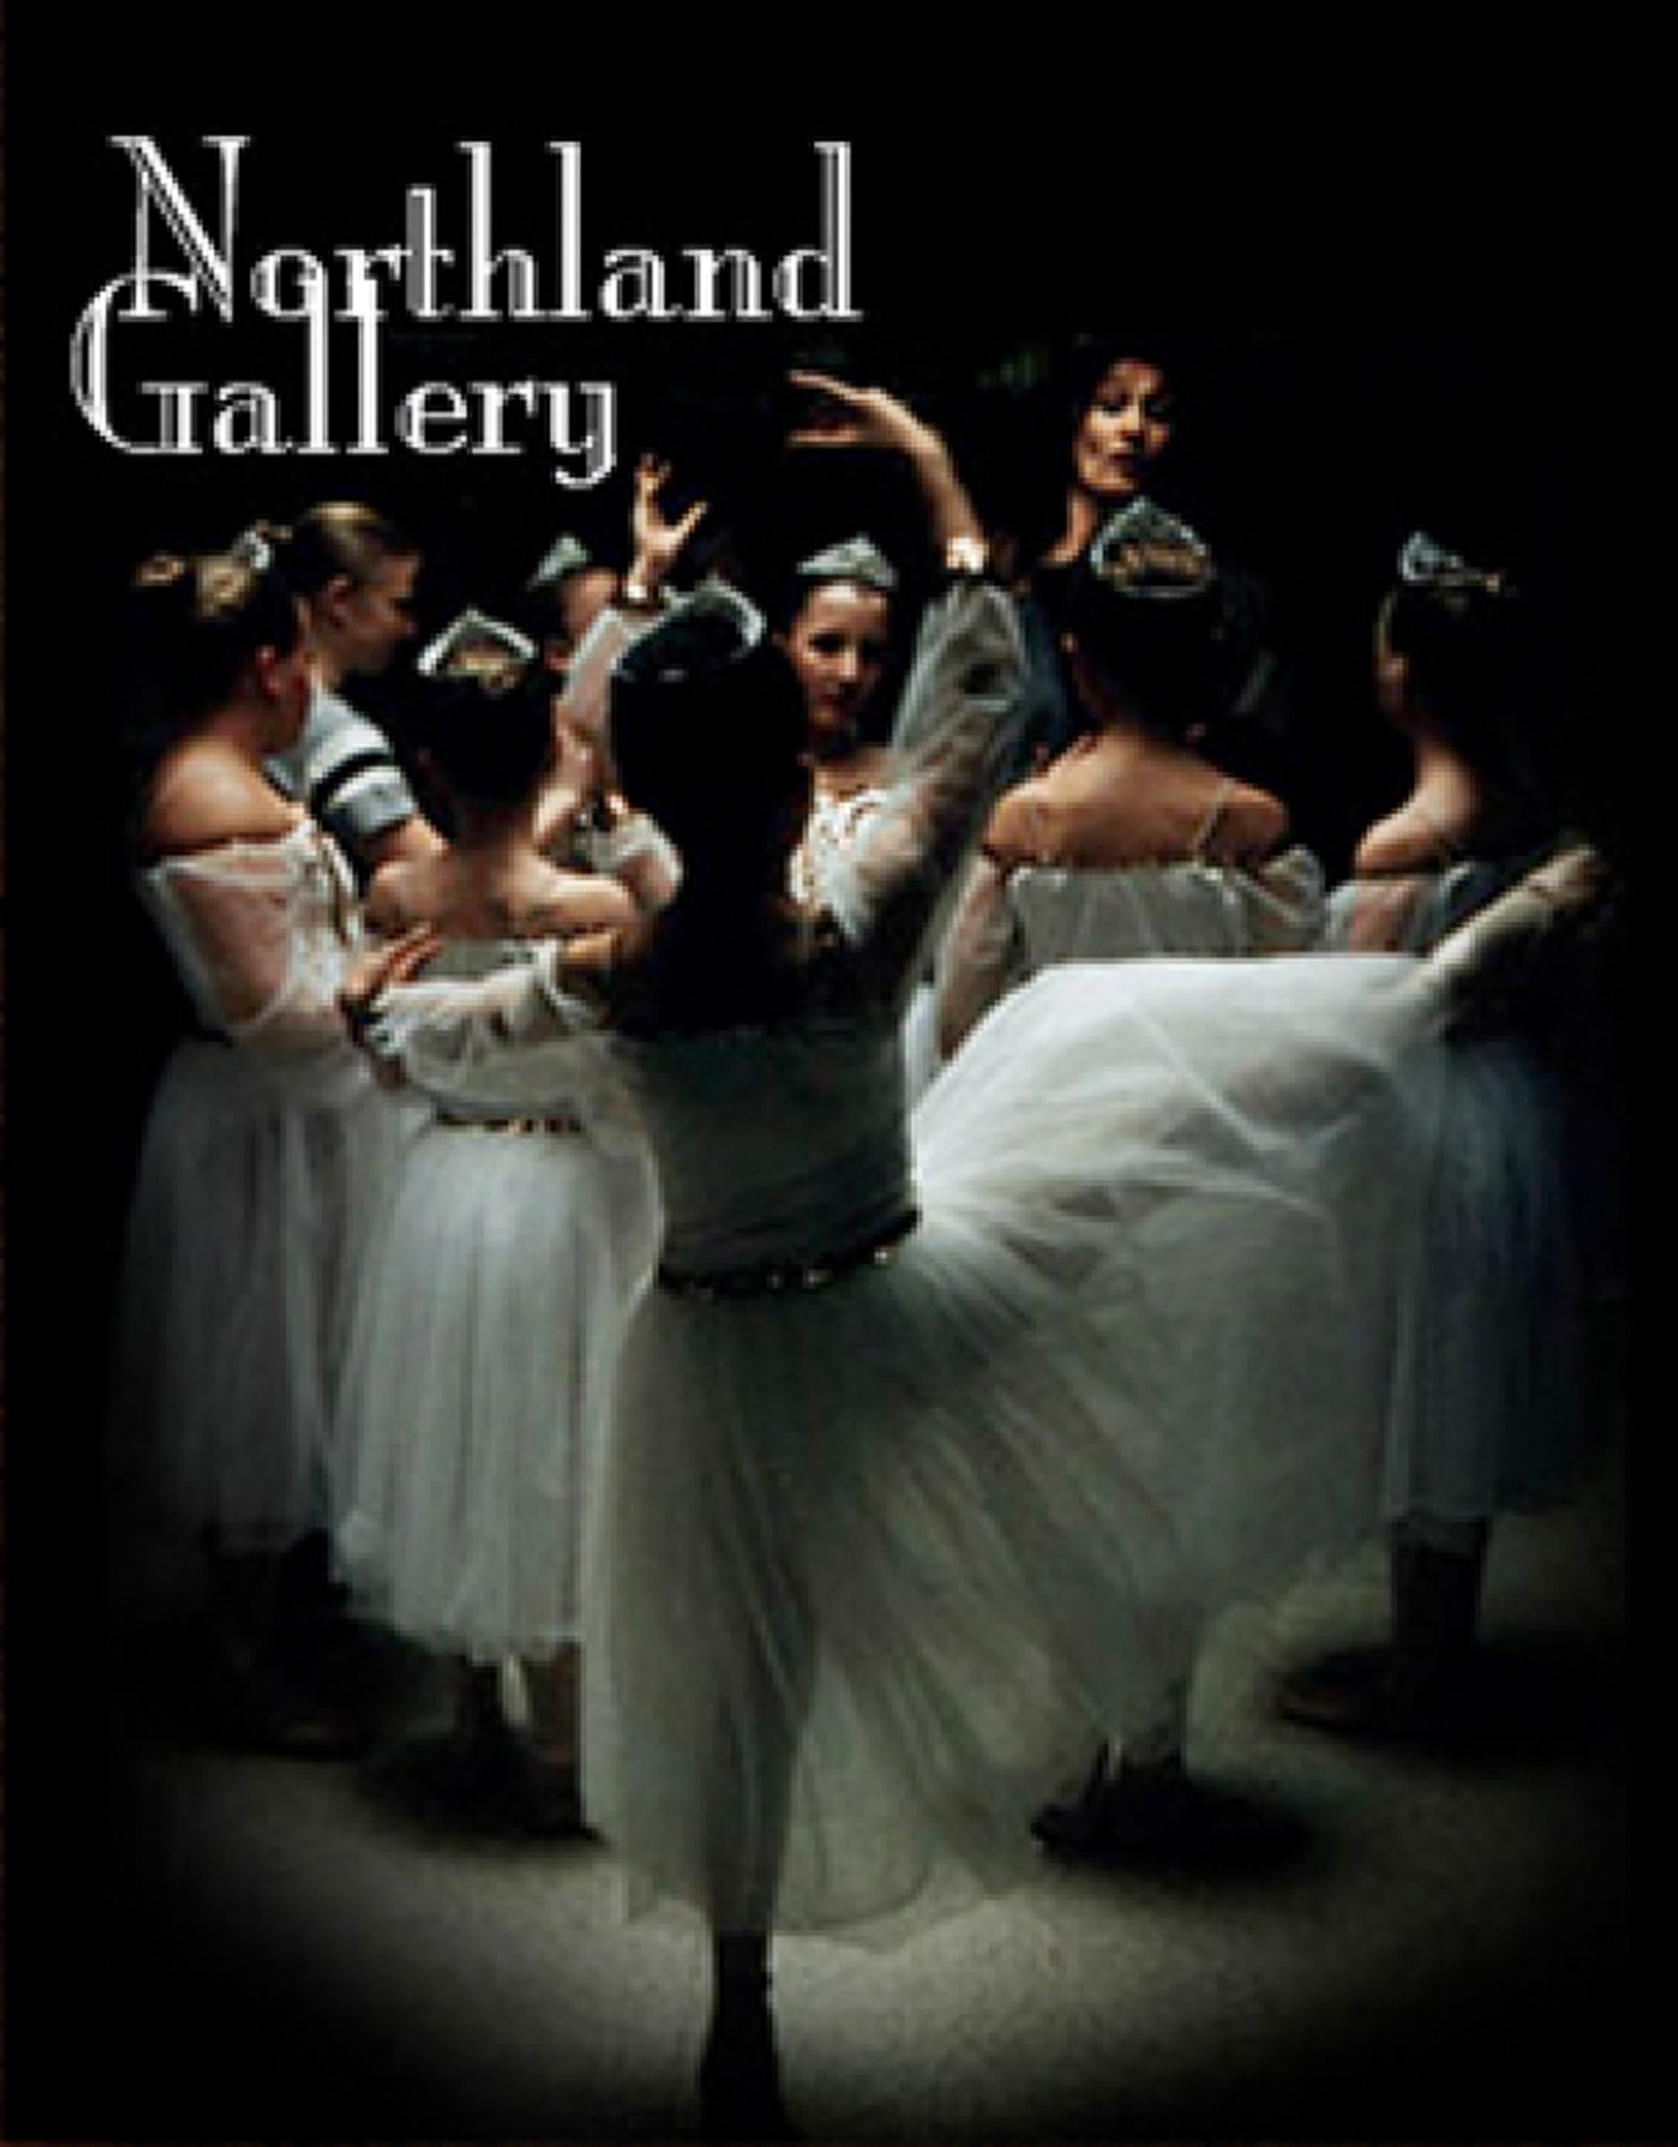 Northland Dancers